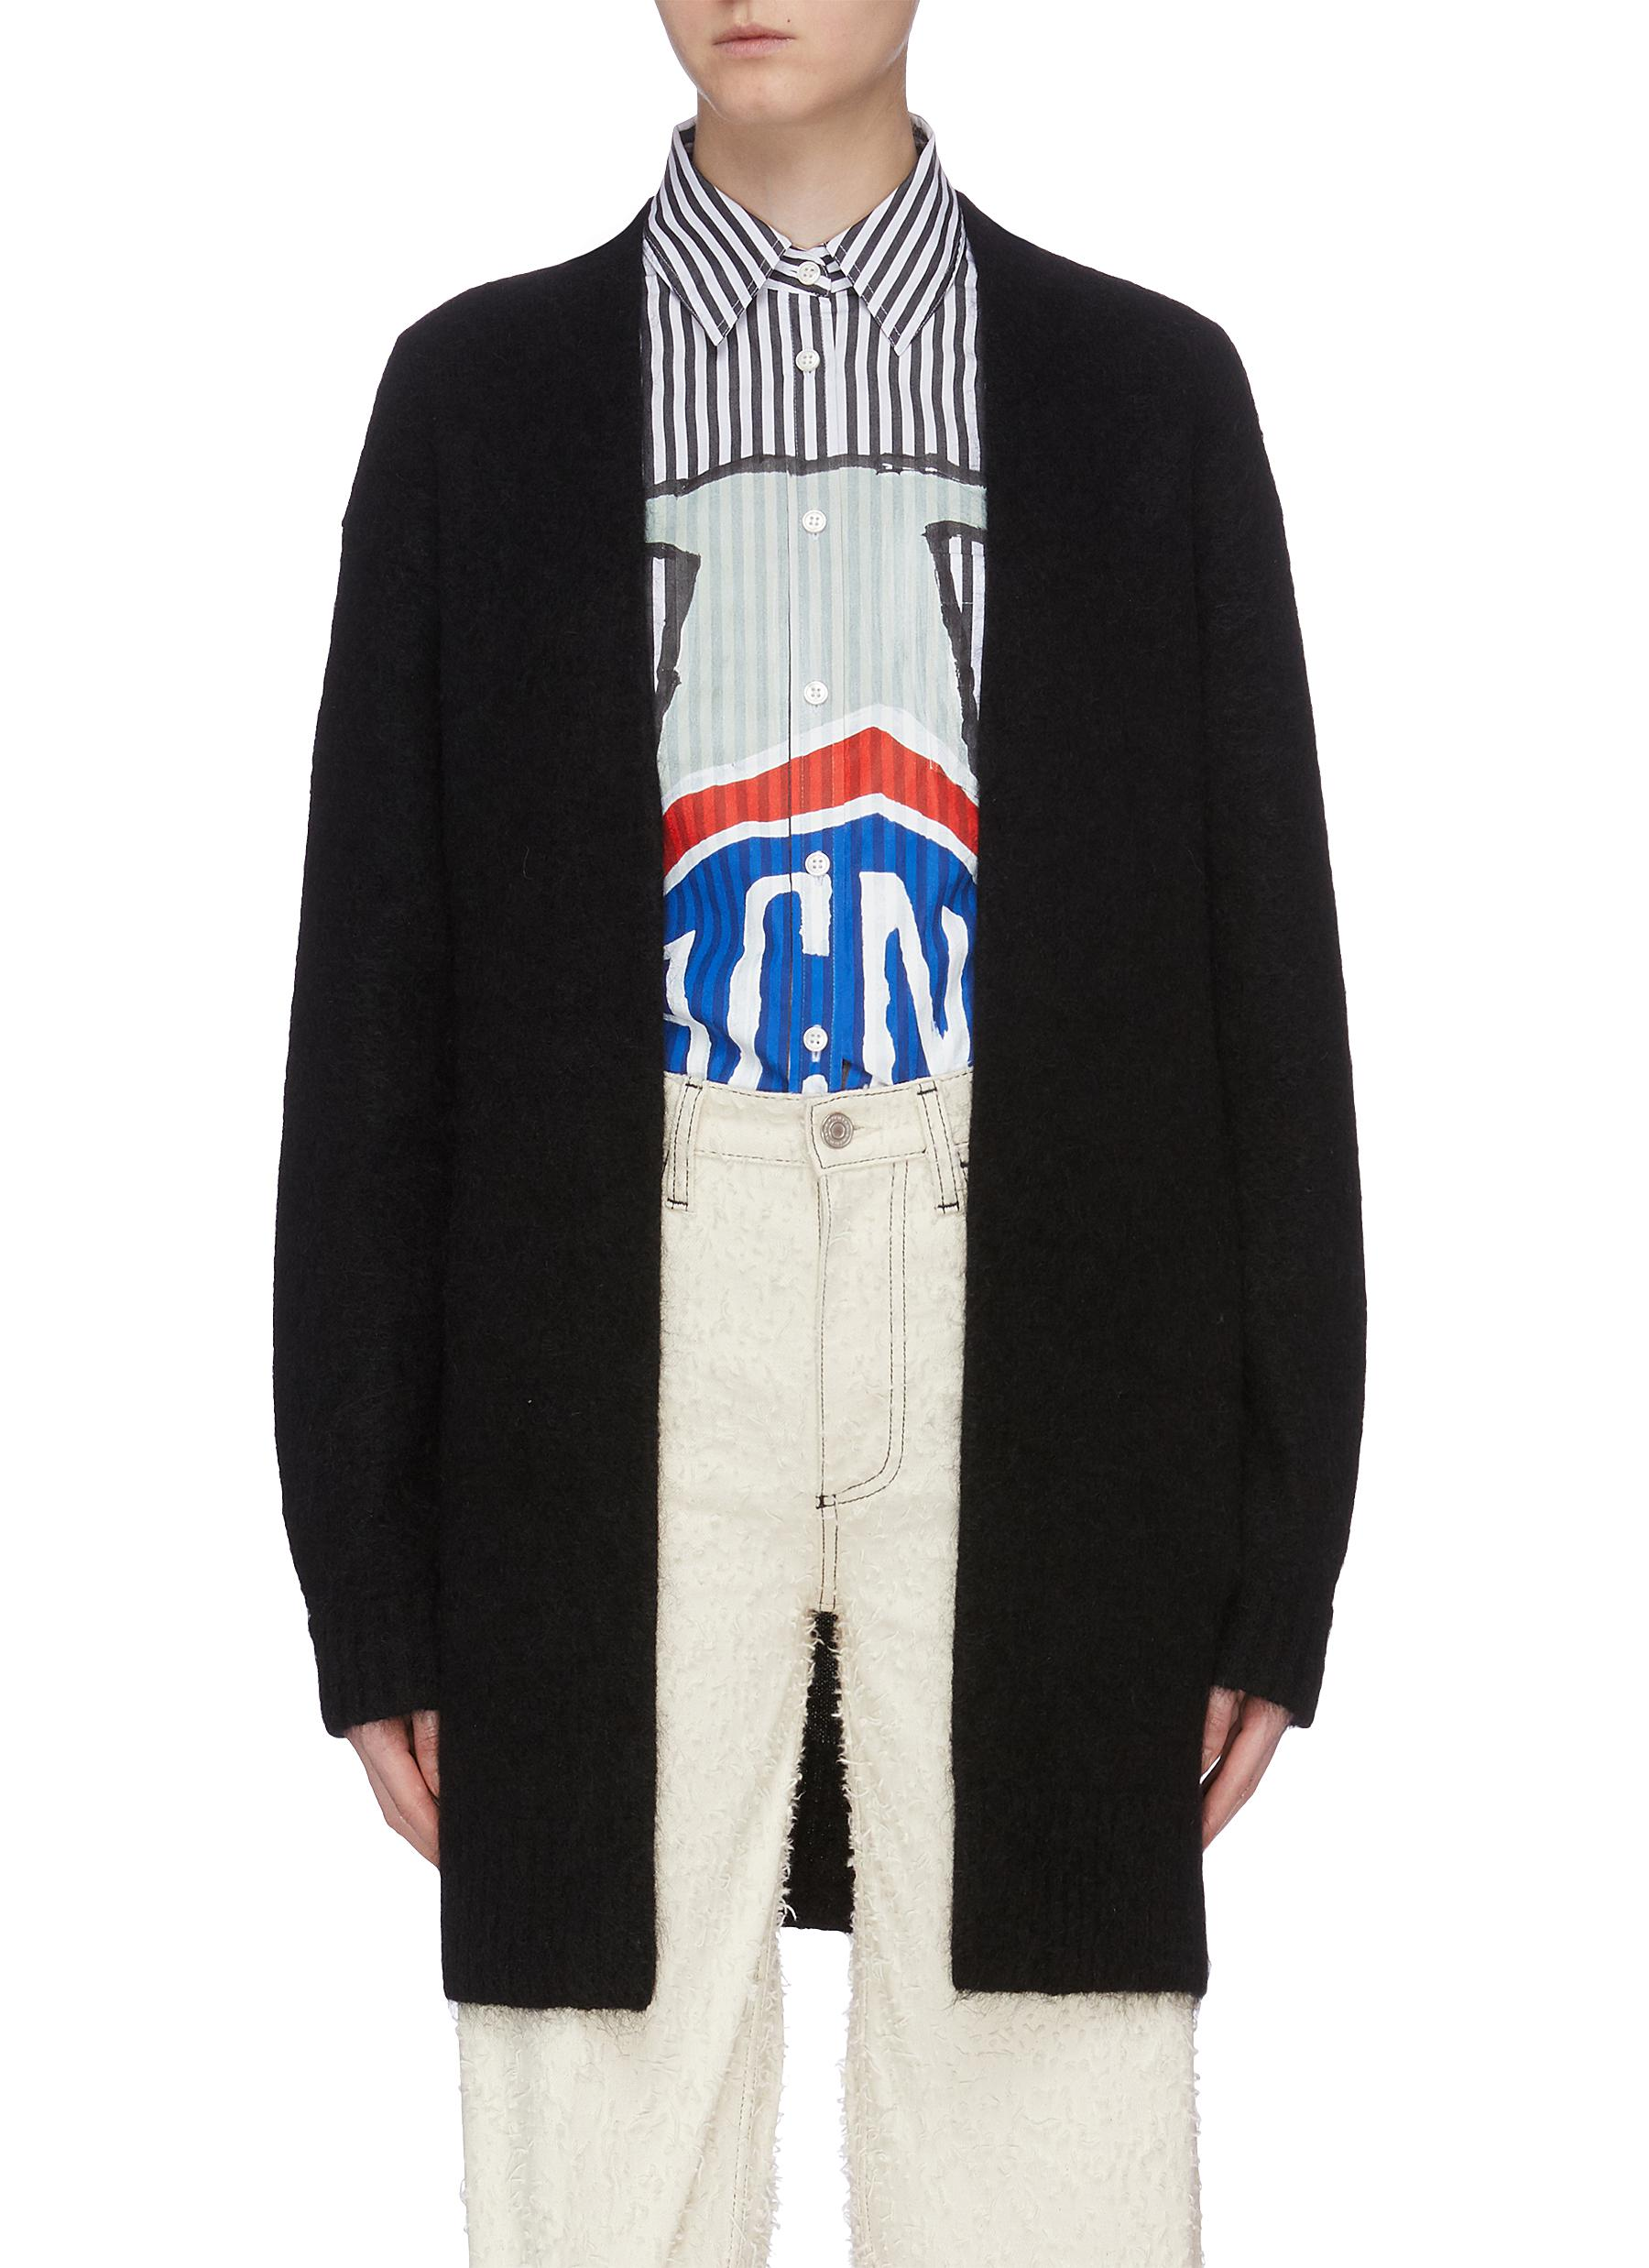 Open cardigan by Acne Studios